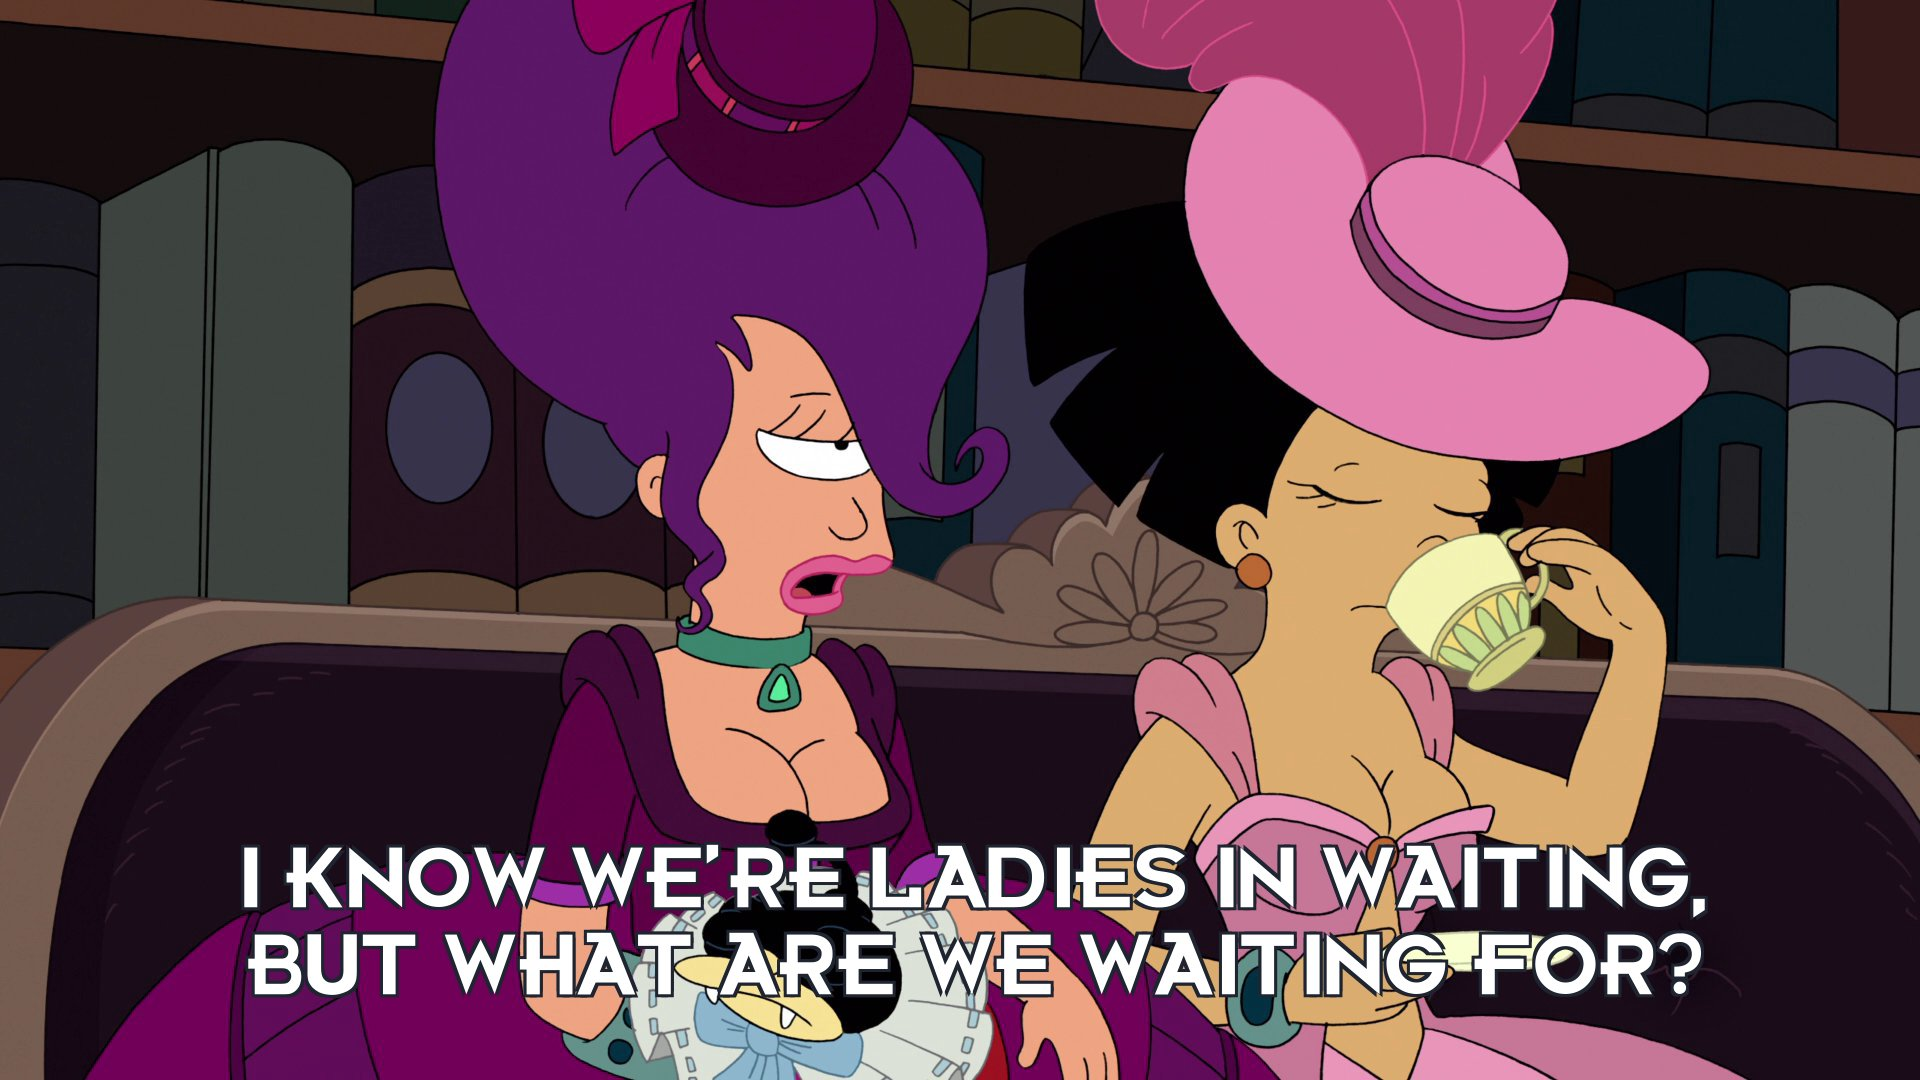 Turanga Leela: I know we're ladies in waiting, but what are we waiting for?